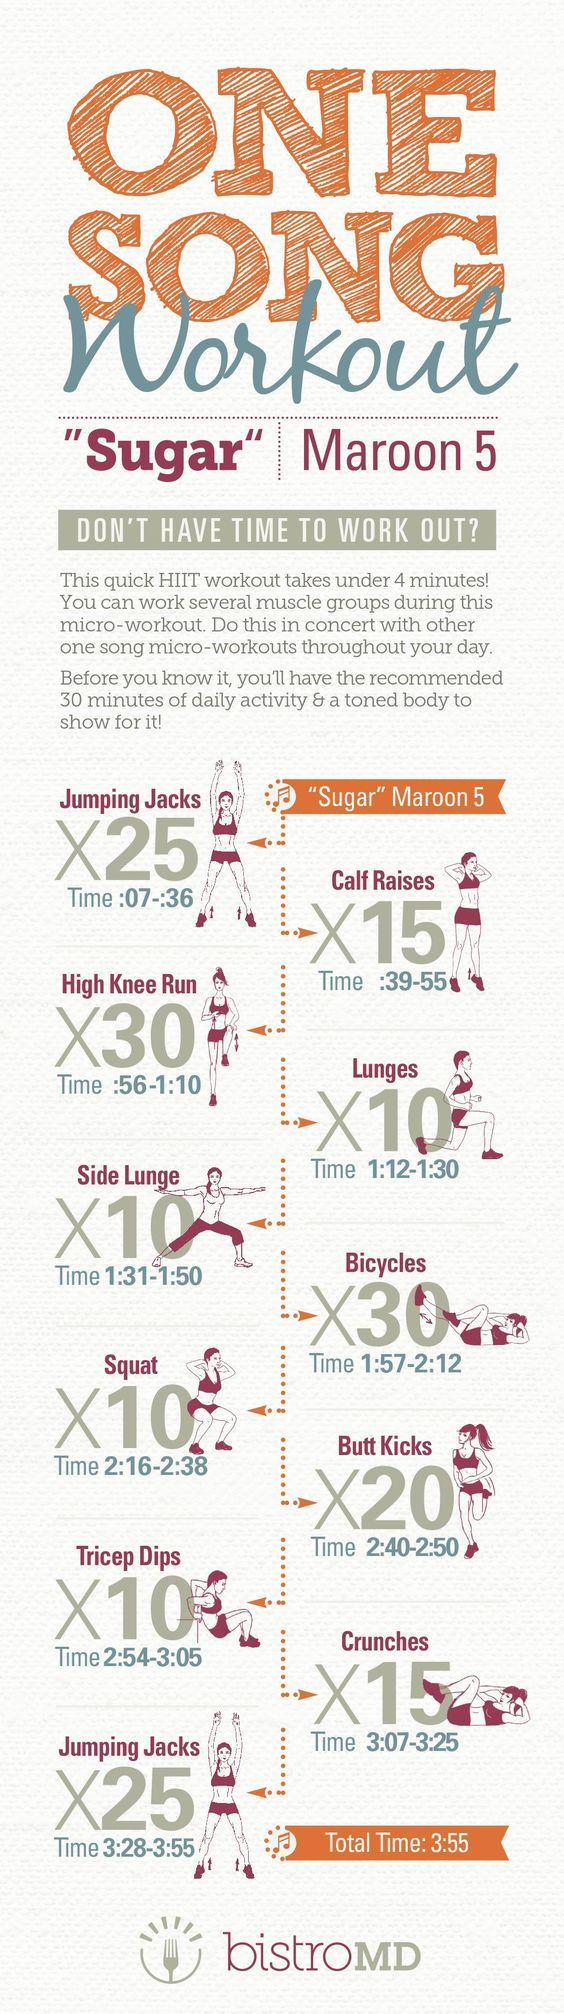 If you don't have time to work out, but want to stay in shape, this list with quick fat-burning tabata workouts will save you! Get fit and healthy in just a few minutes daily! All you need is 4-7 minutes to perform these short HIIT exercises. No equipment necessary - all bodyweight workouts, that you can do at home, or anywhere you want.